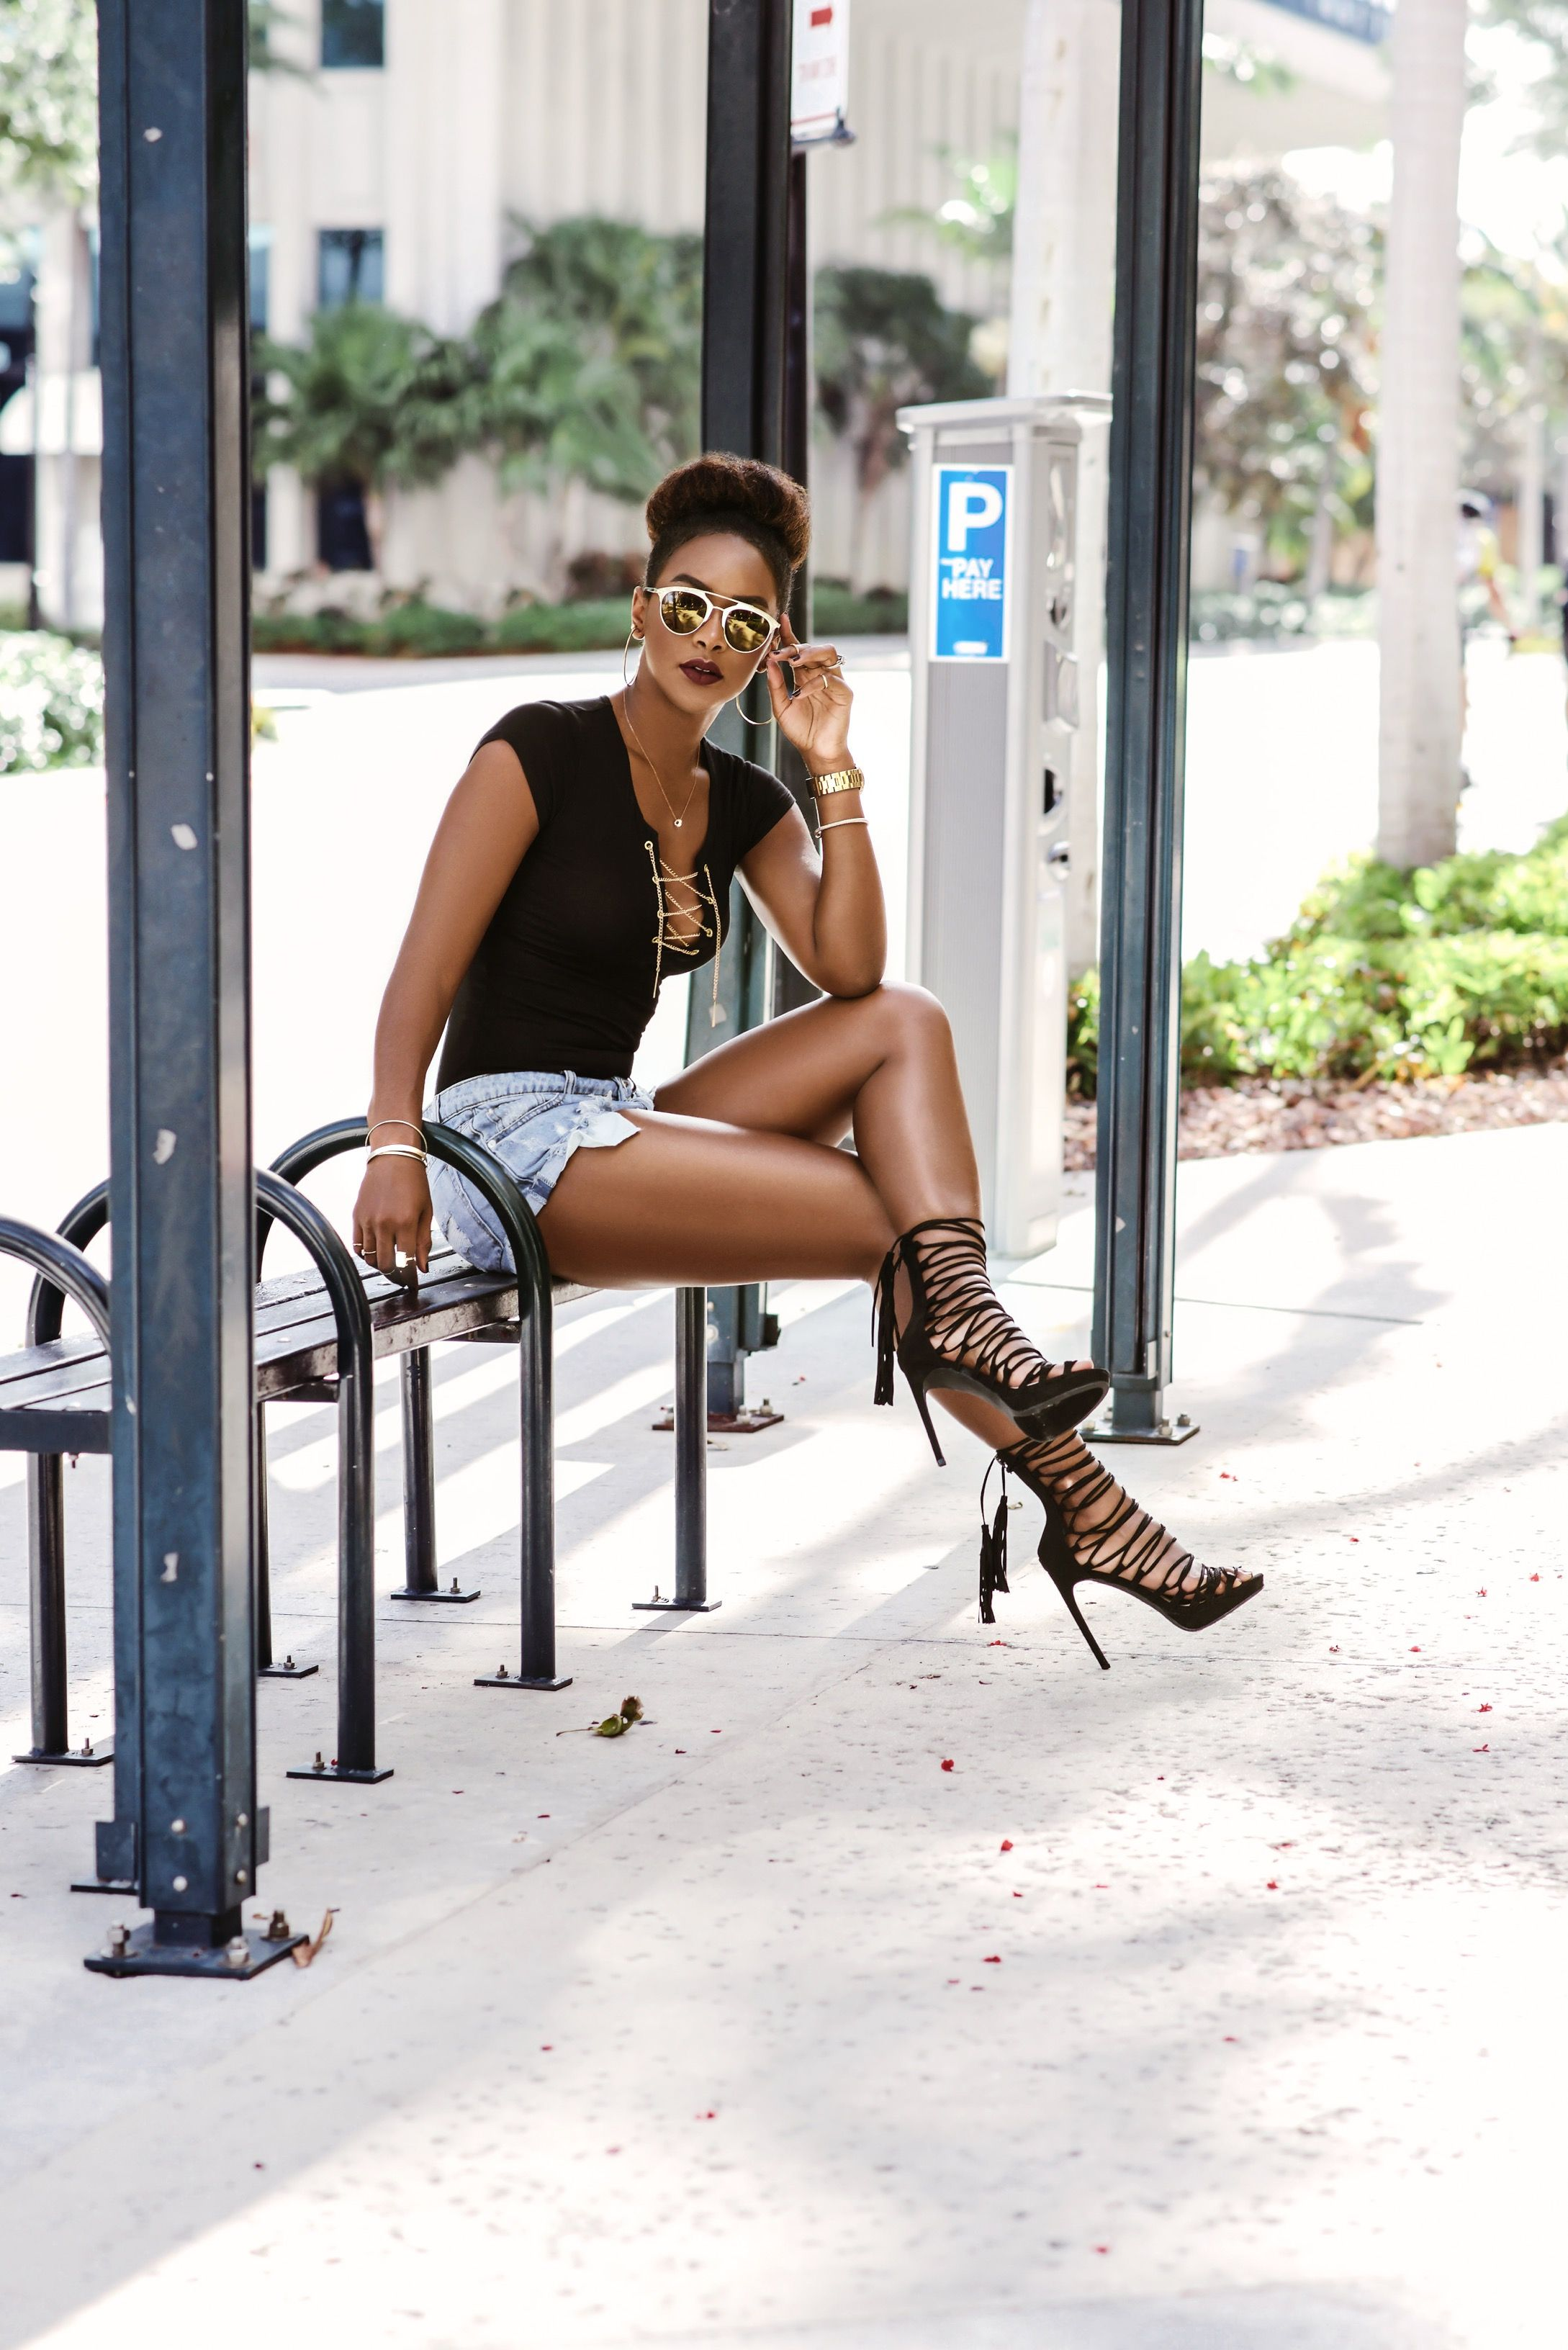 7776aee243c Fashion Bombshell of the Day  Brittany from Miami – Fashion Bomb Daily  Style Magazine  Celebrity Fashion